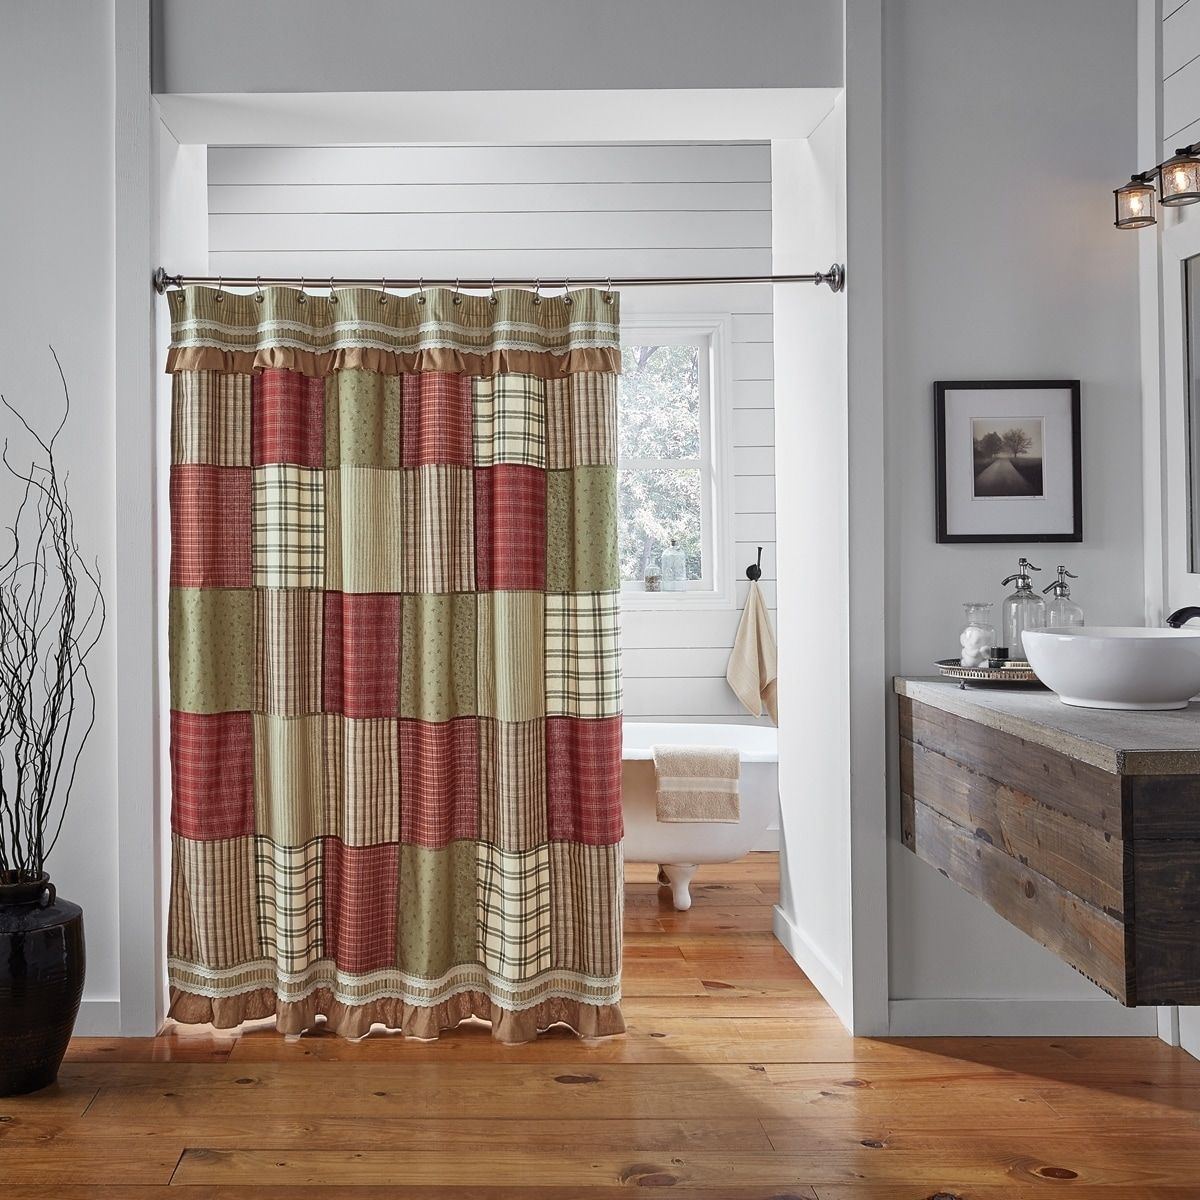 Red Farmhouse Bath Vhc Prairie Winds Shower Curtain Rod Pocket Cotton Patchwork Lace Cotton Burlap